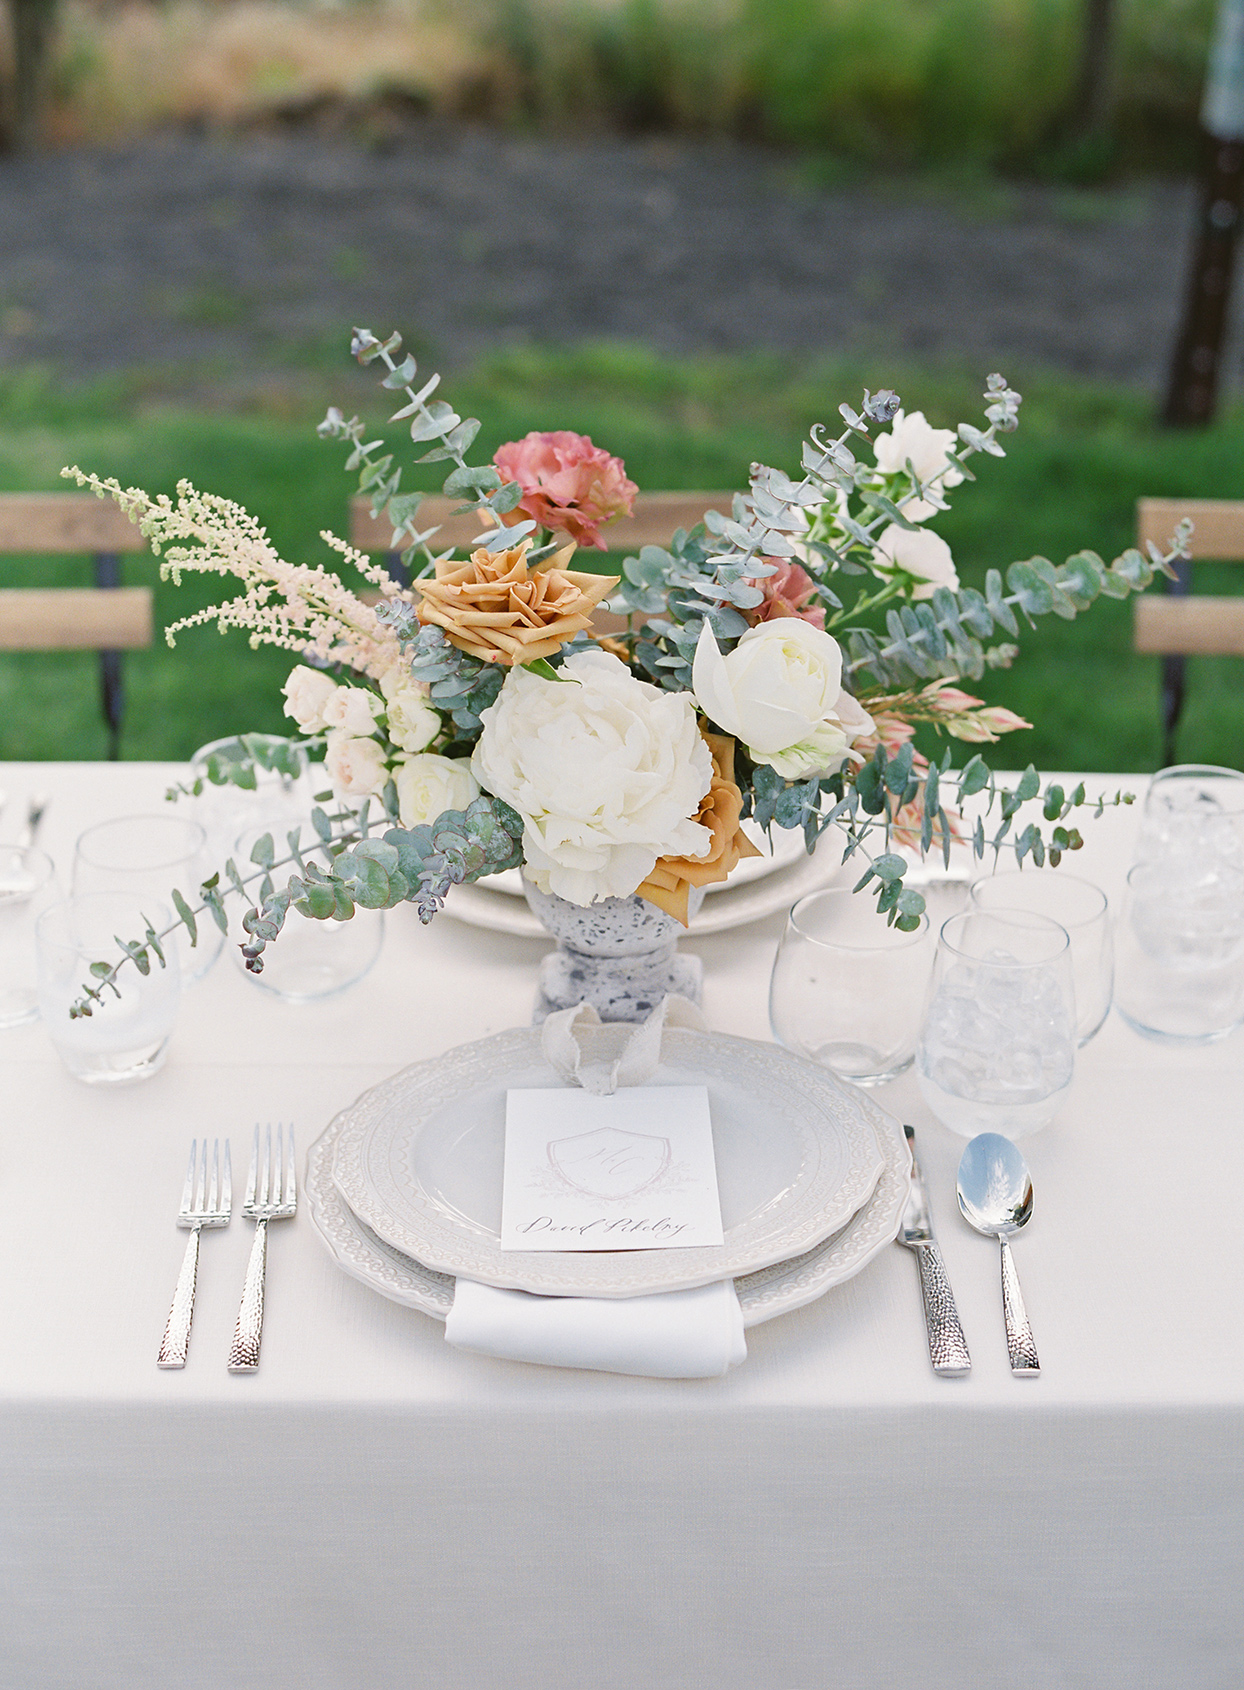 micaela curtis wedding white place setting with floral centerpiece